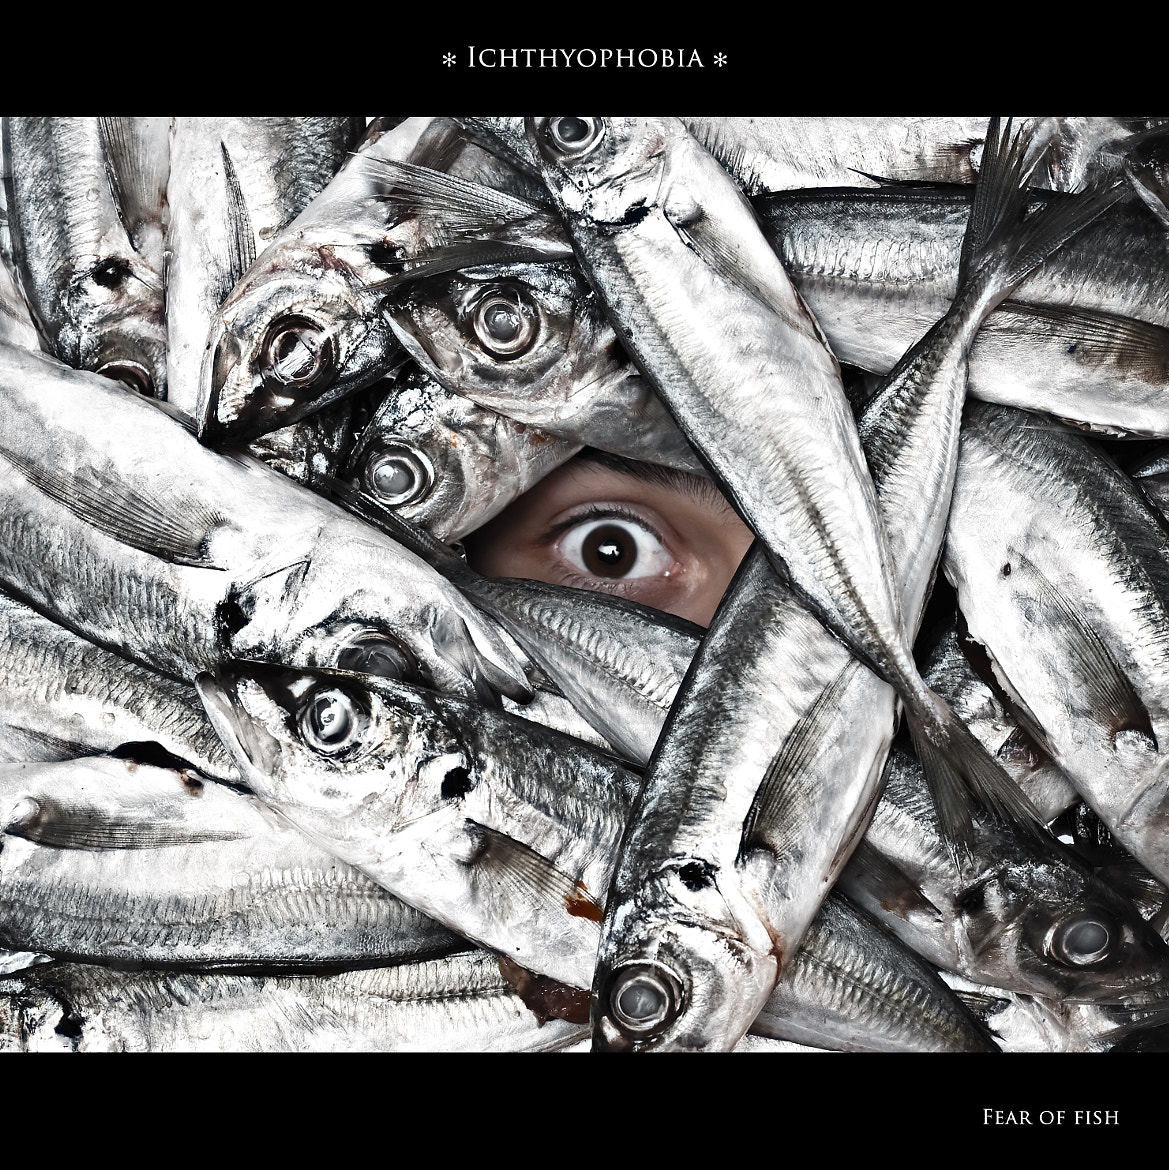 Photograph Ichthyophobia - Fear of fish by Rui Silva on 500px